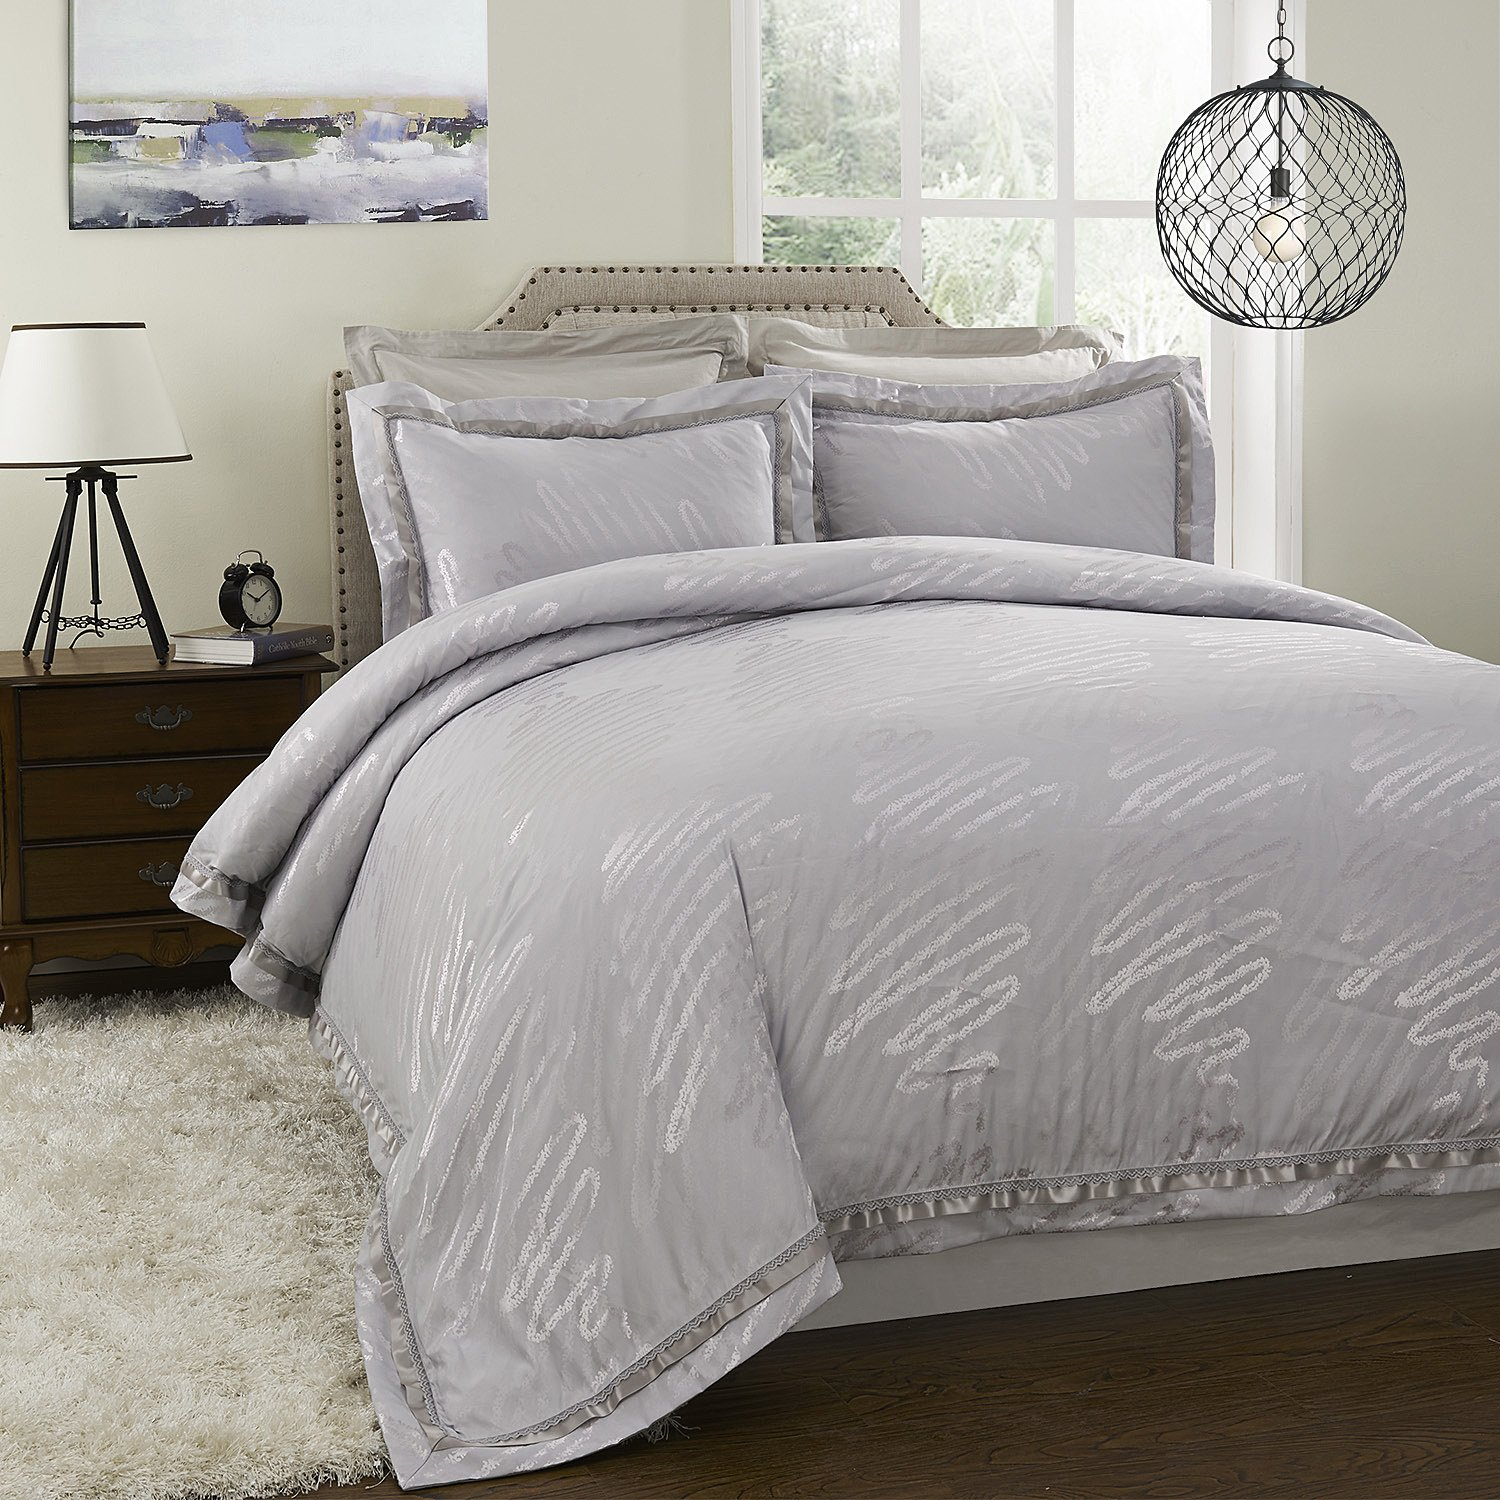 Poly silk cotton Jacquard Bedding Silver Duvet Cover Set